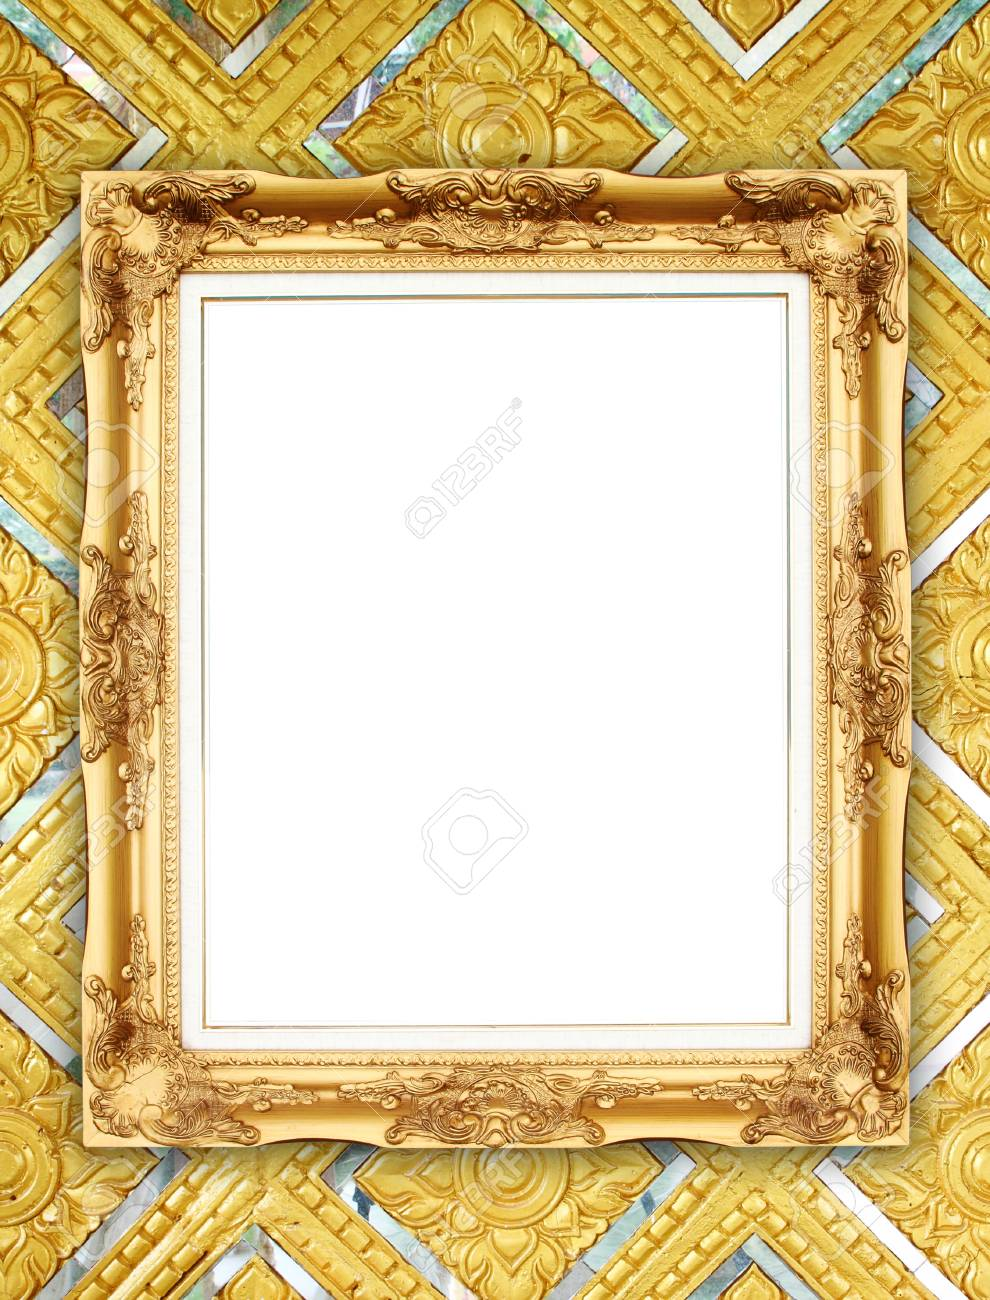 Blank Golden Frame On Thai Style Buddha Wall Stock Photo, Picture ...